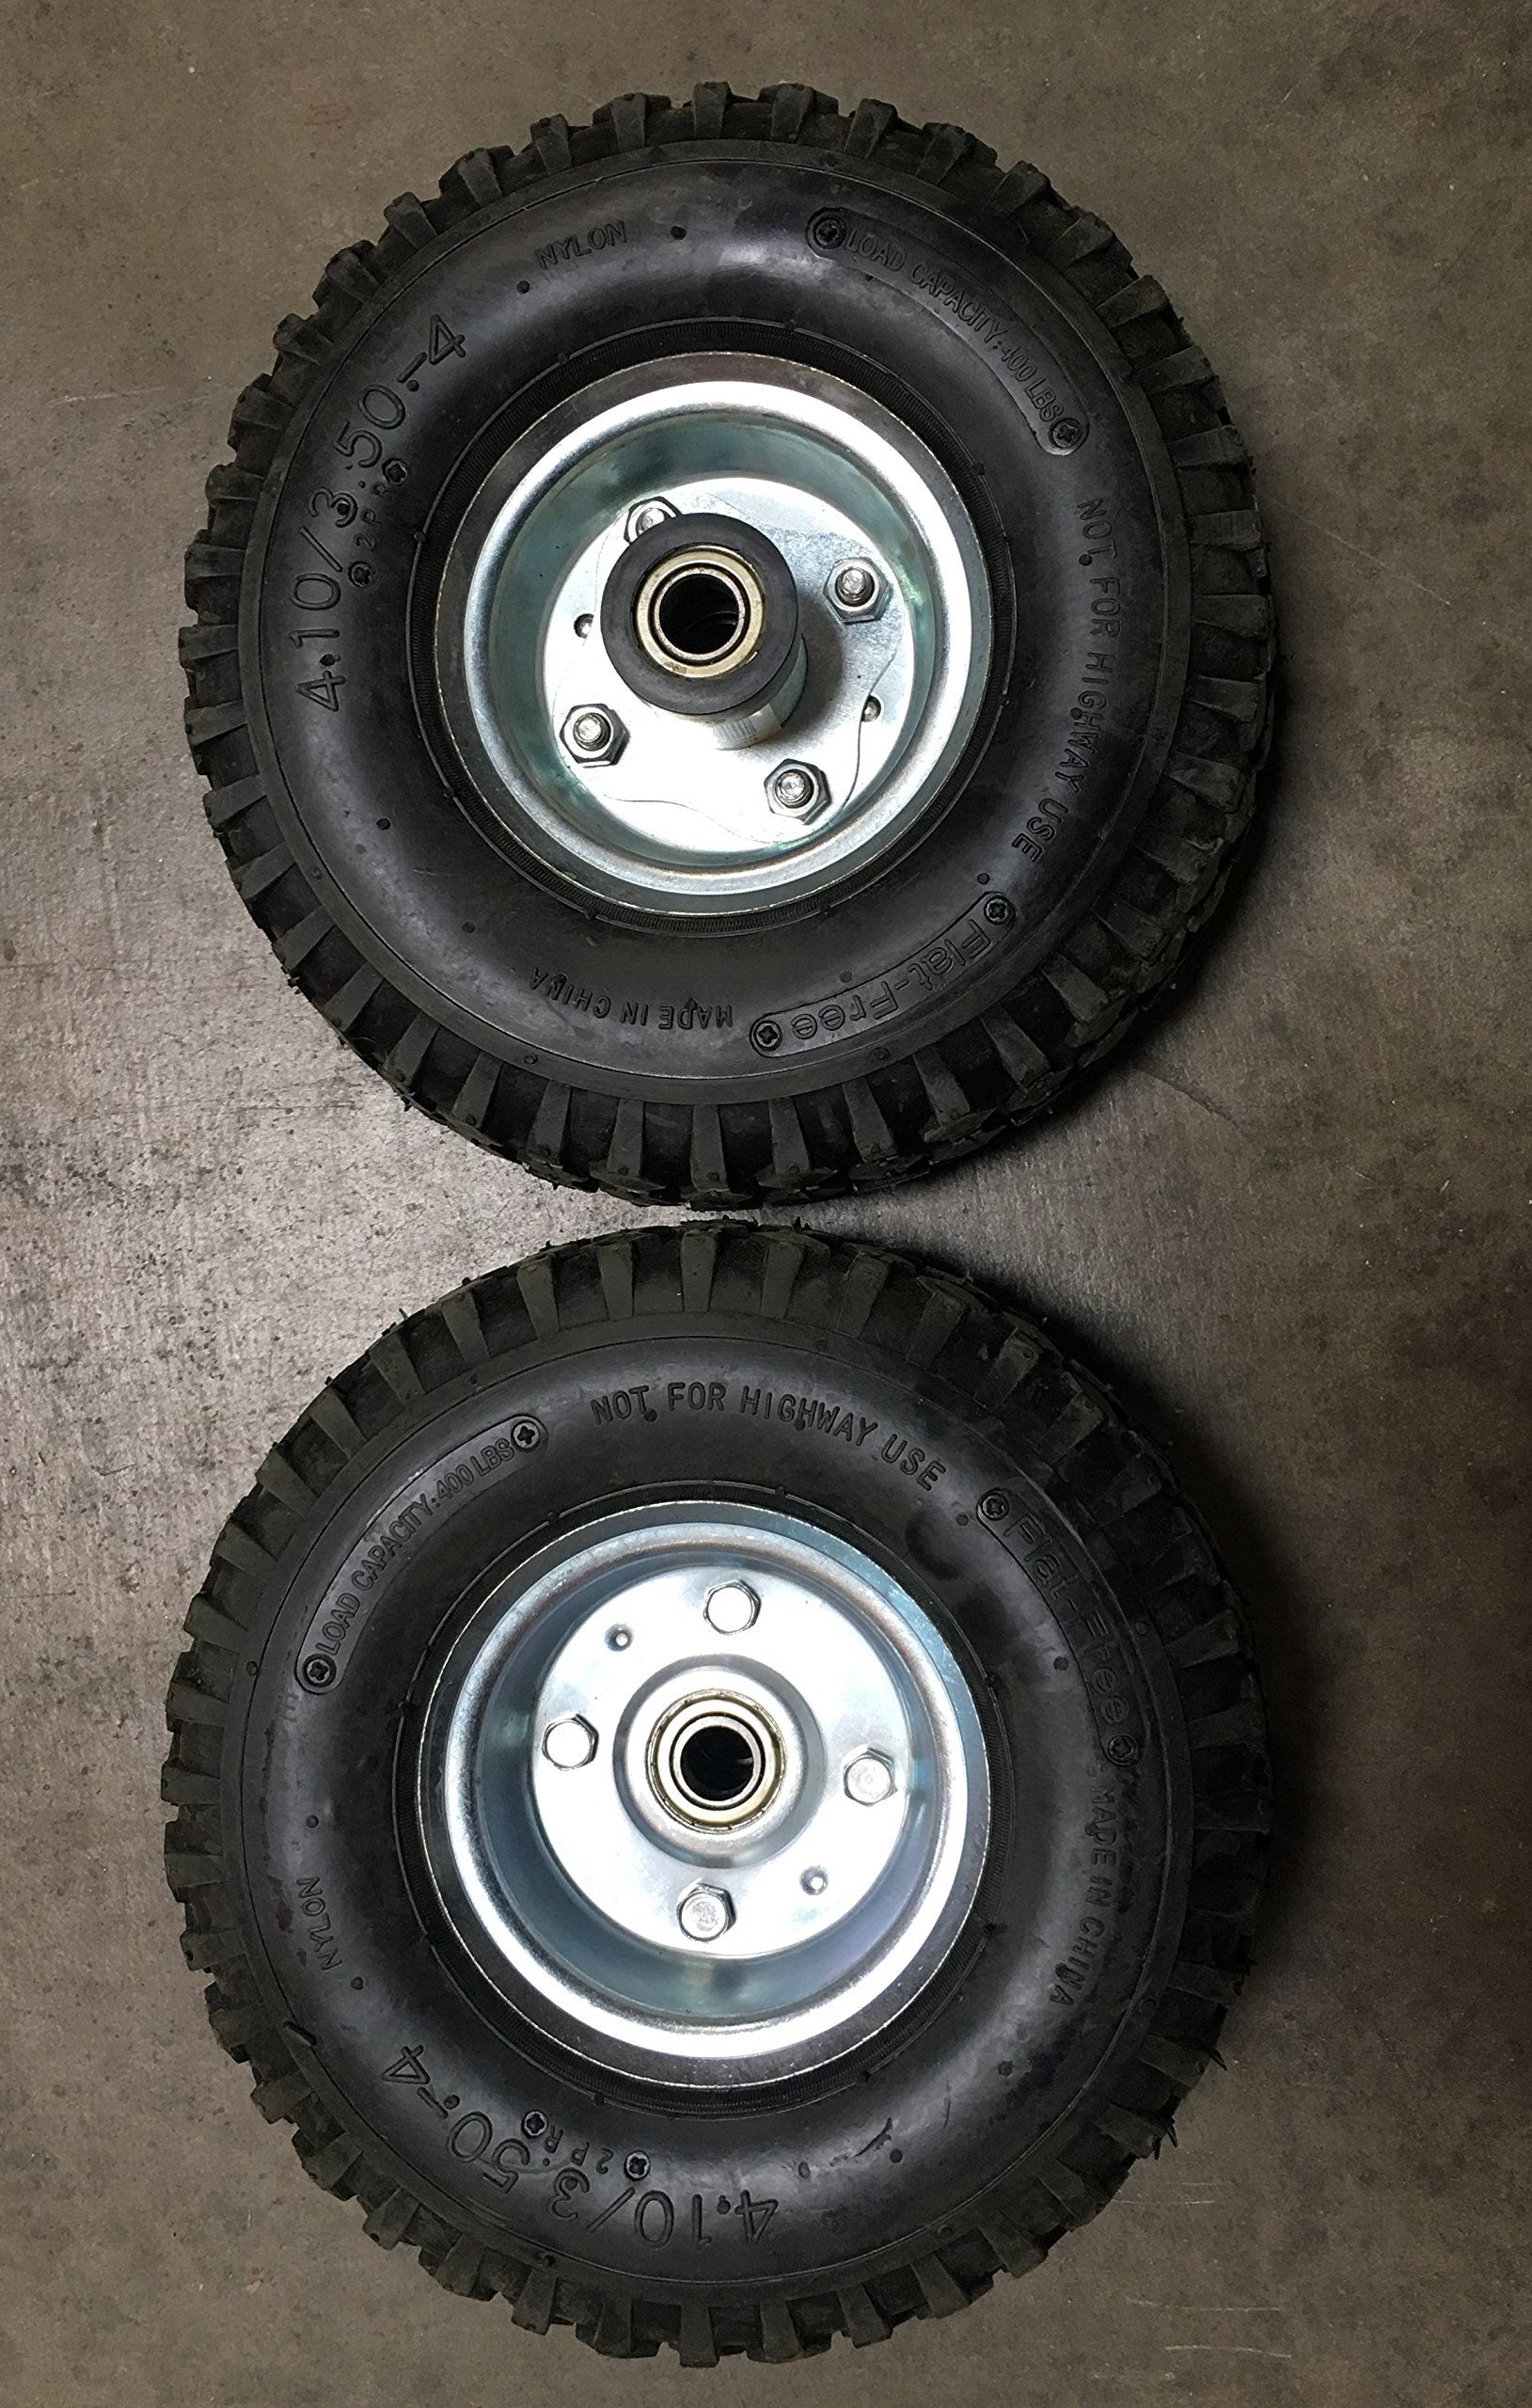 New Pair of 500LB Non Flat Tires, Hand Truck / All-Purpose Utility Tire on Wheel, 2 1/8'' Offset Hub, 5/8'' Bearings